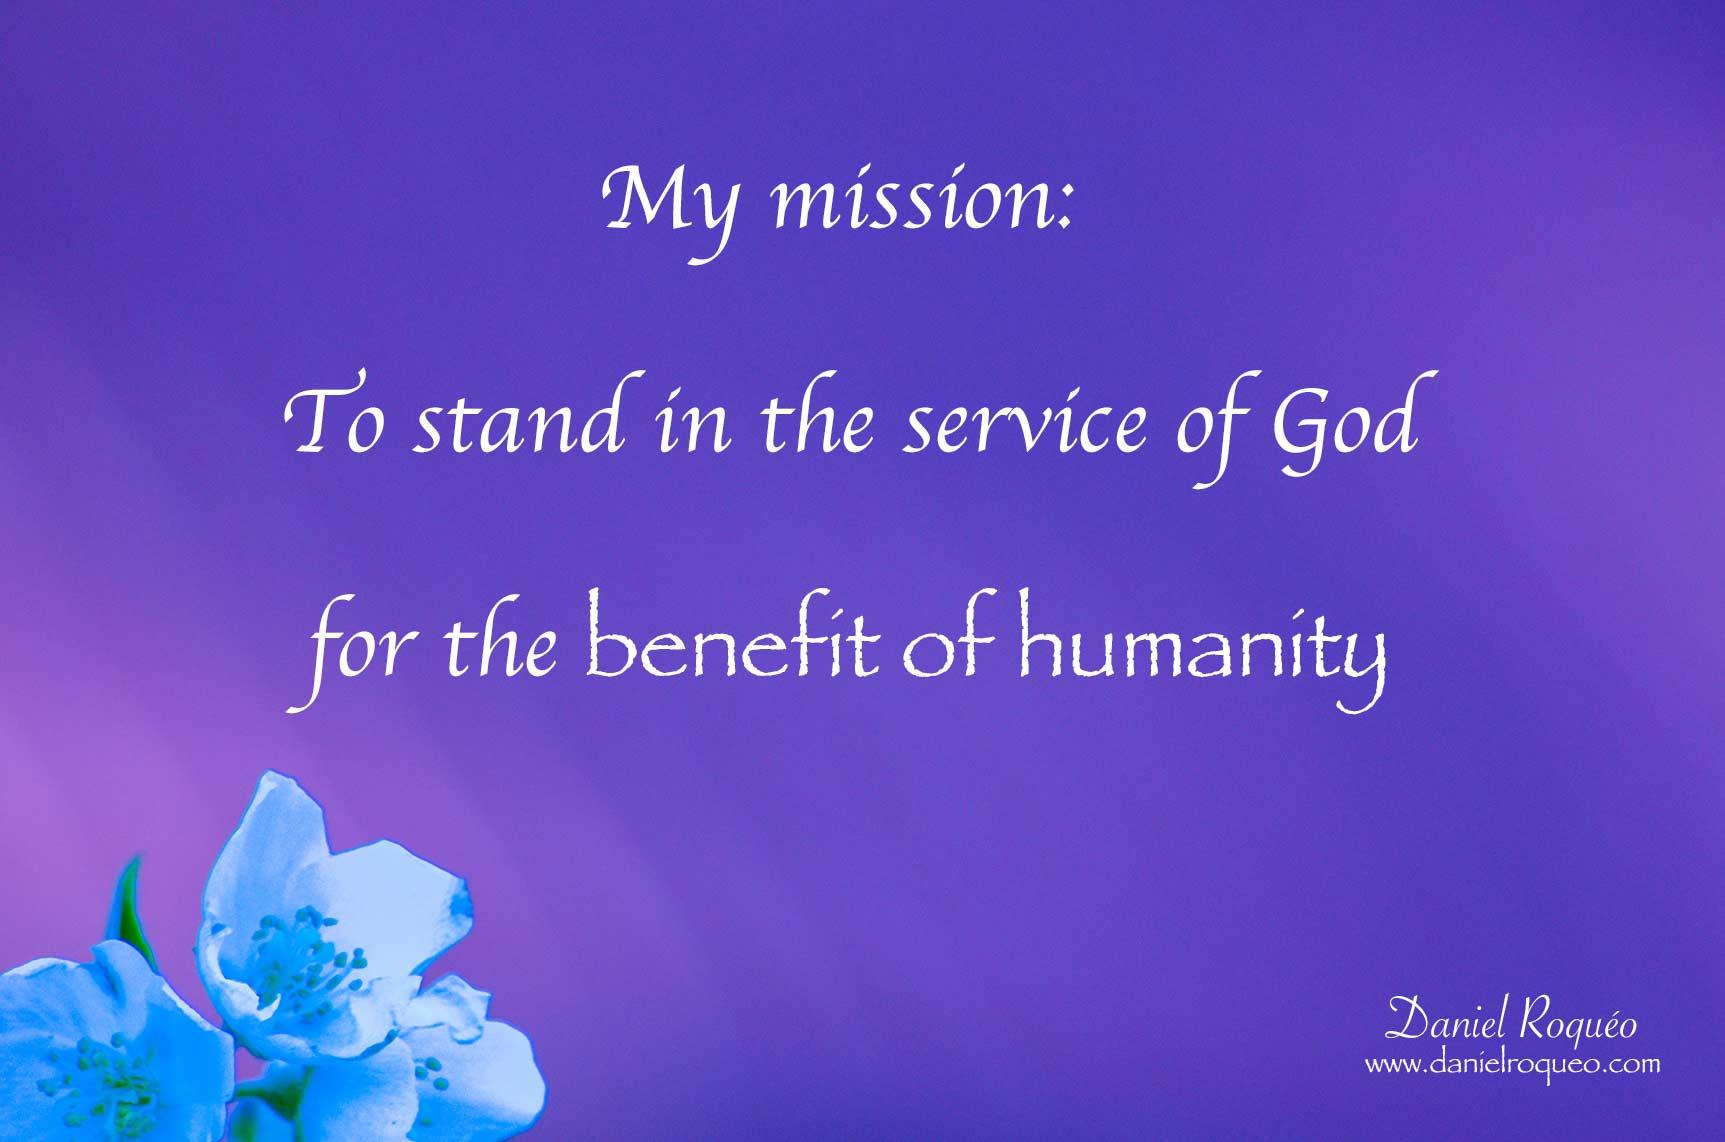 my mission is to stand in the service of God for the benefit of humanity